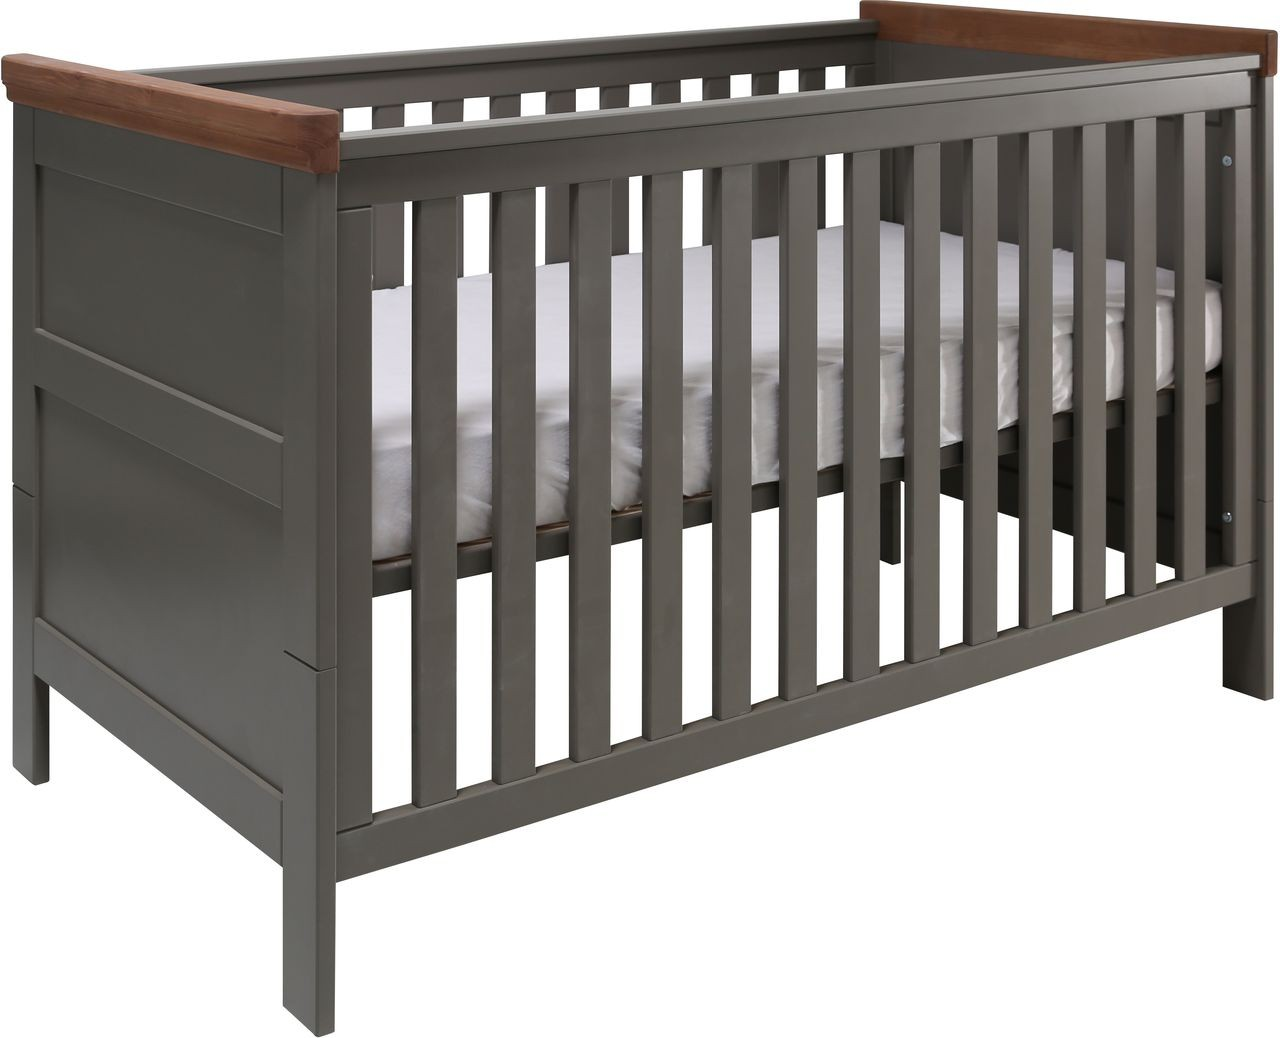 kidsmill babybett earth 60x120 cm grau fichte kleine fabriek. Black Bedroom Furniture Sets. Home Design Ideas